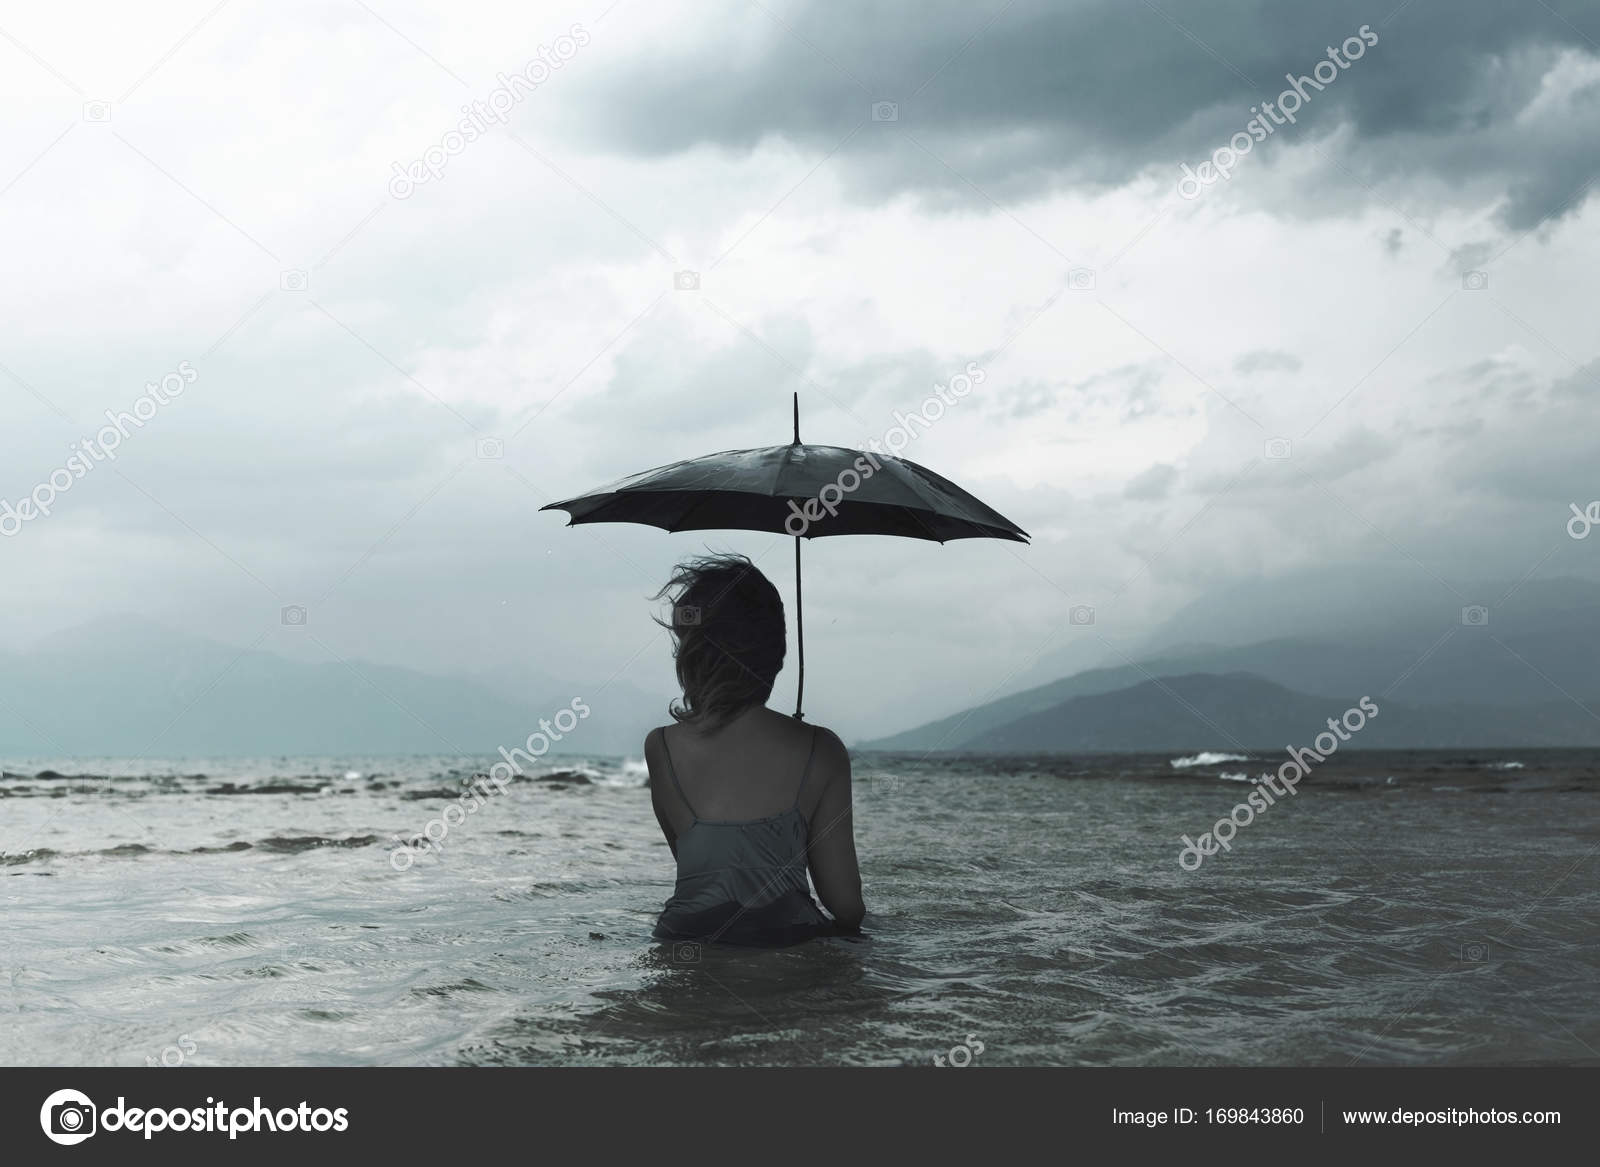 Dreaming Woman With Umbrella Waiting For The Storm Into The Sea